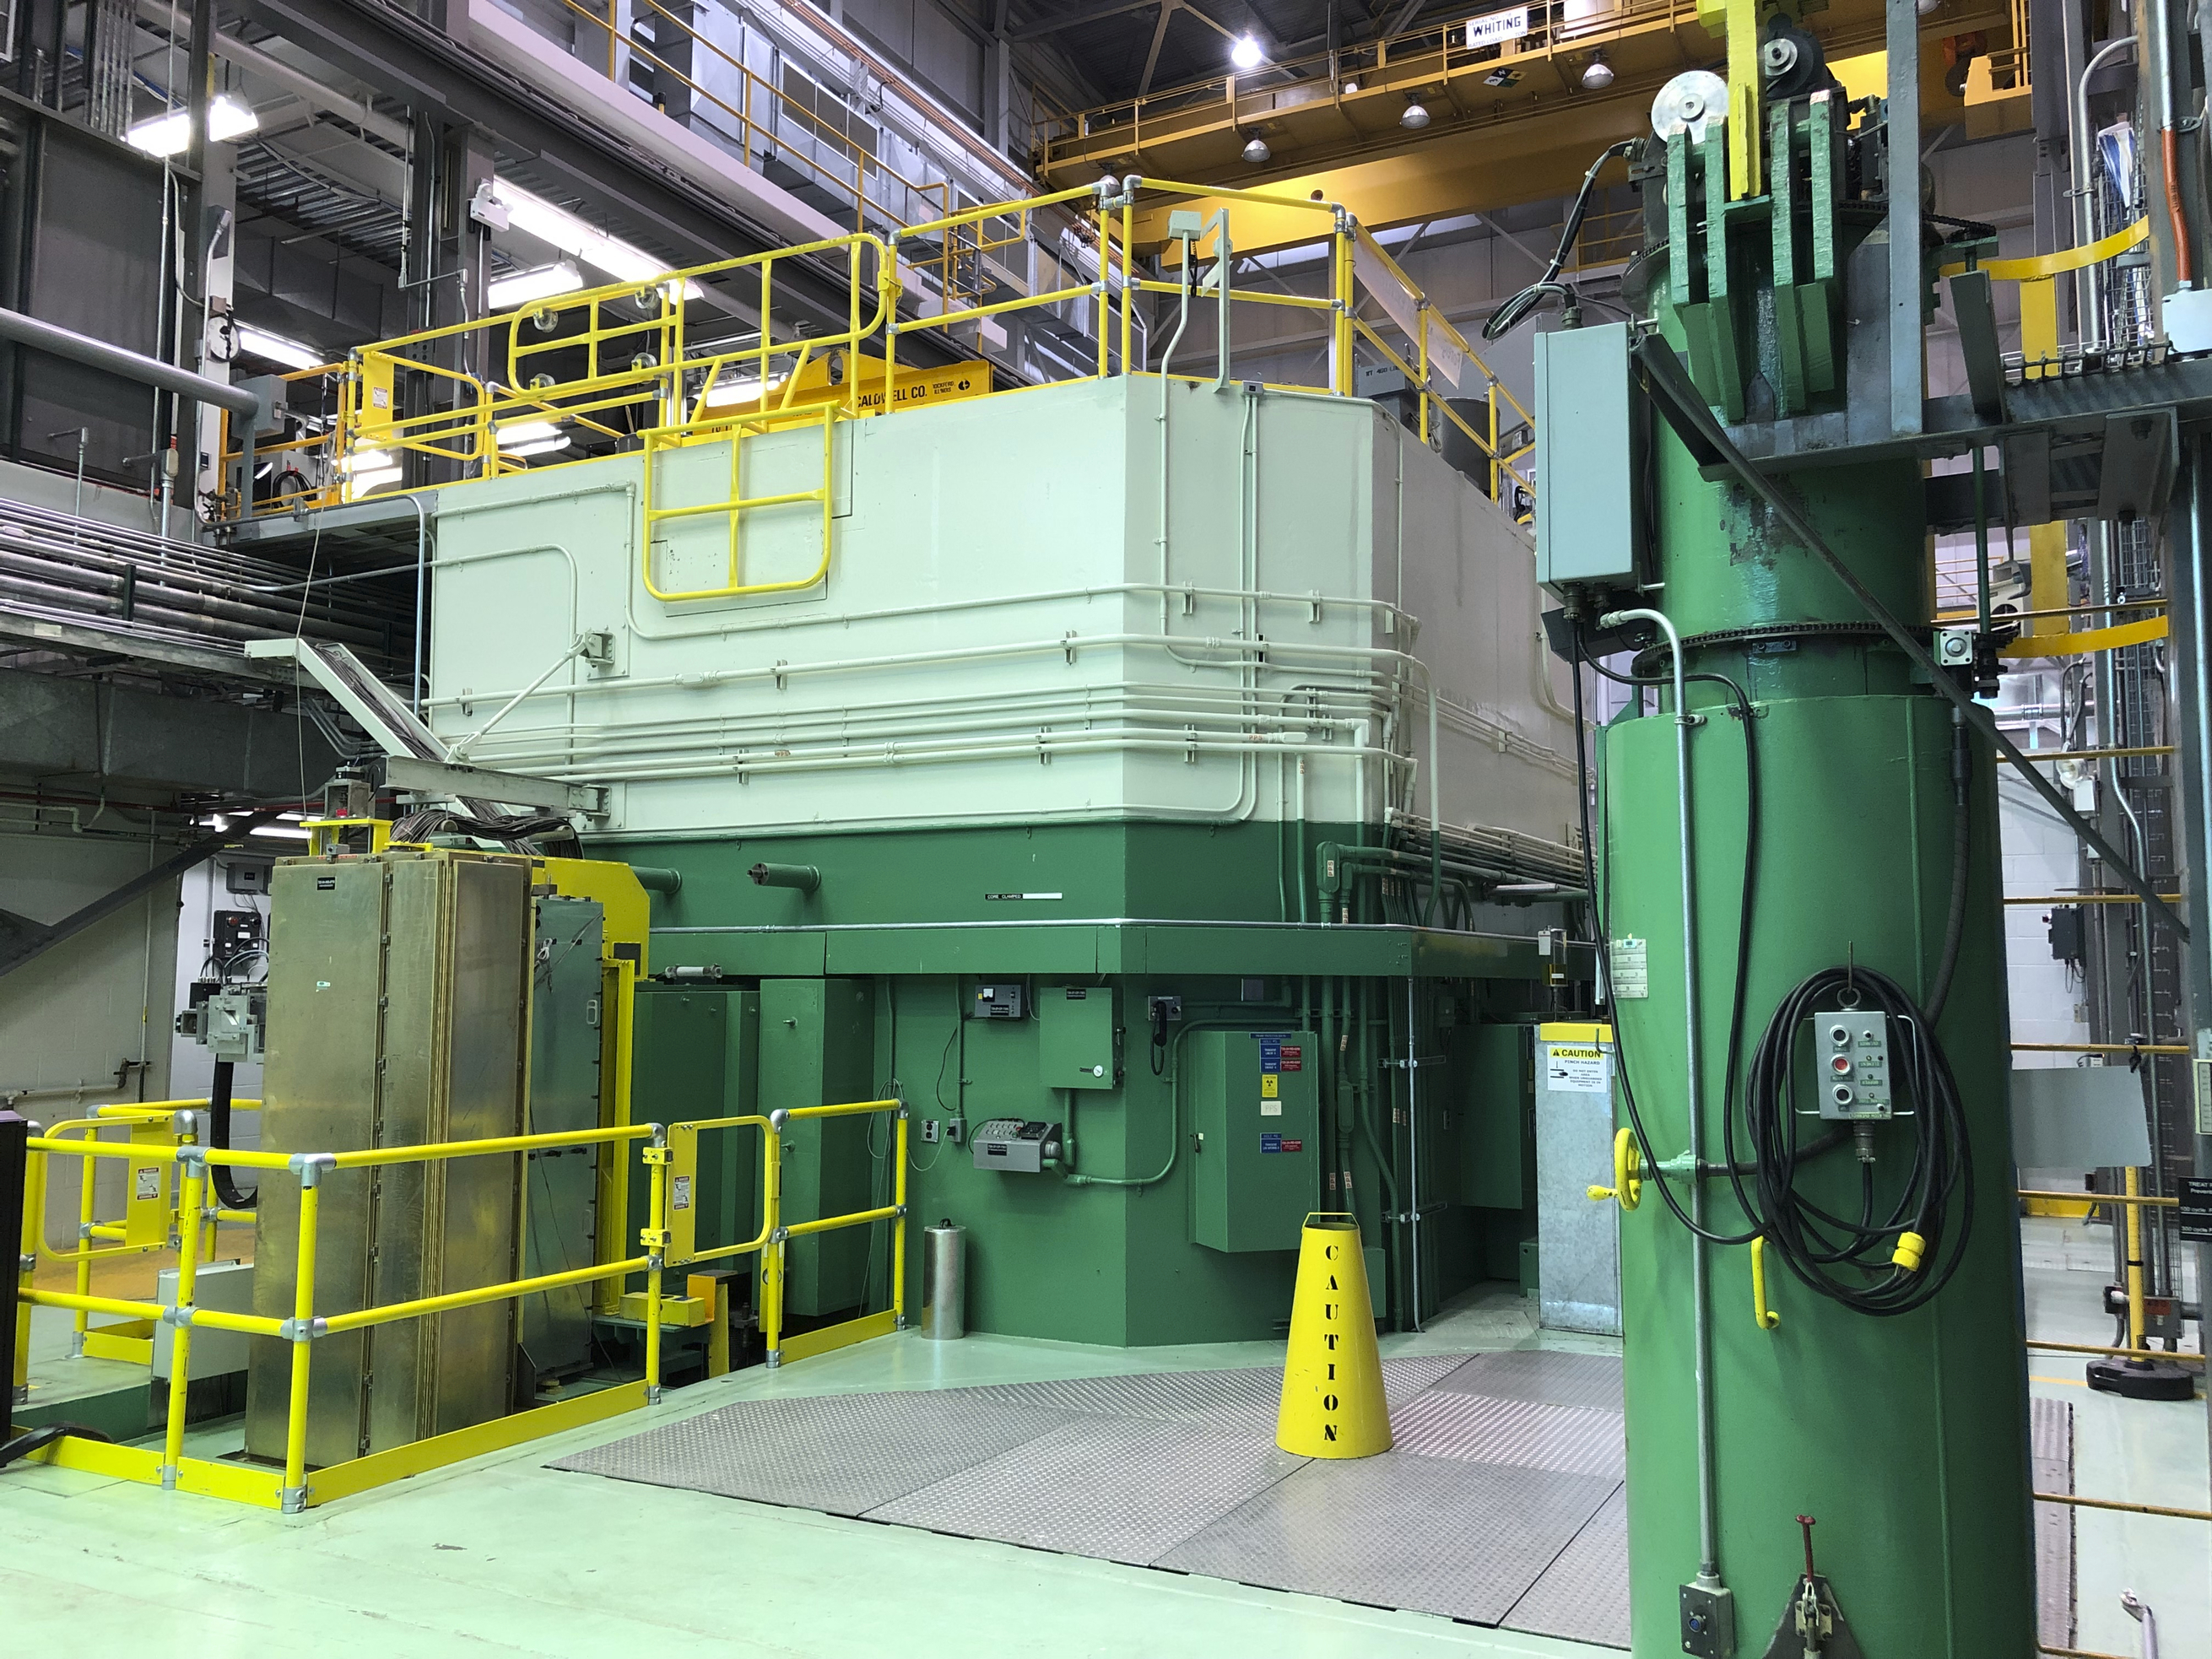 This Nov. 29, 2018 photo shows the Transient Test Reactor at the Idaho National Laboratory about 50 miles west of Idaho Falls, in eastern Idaho.